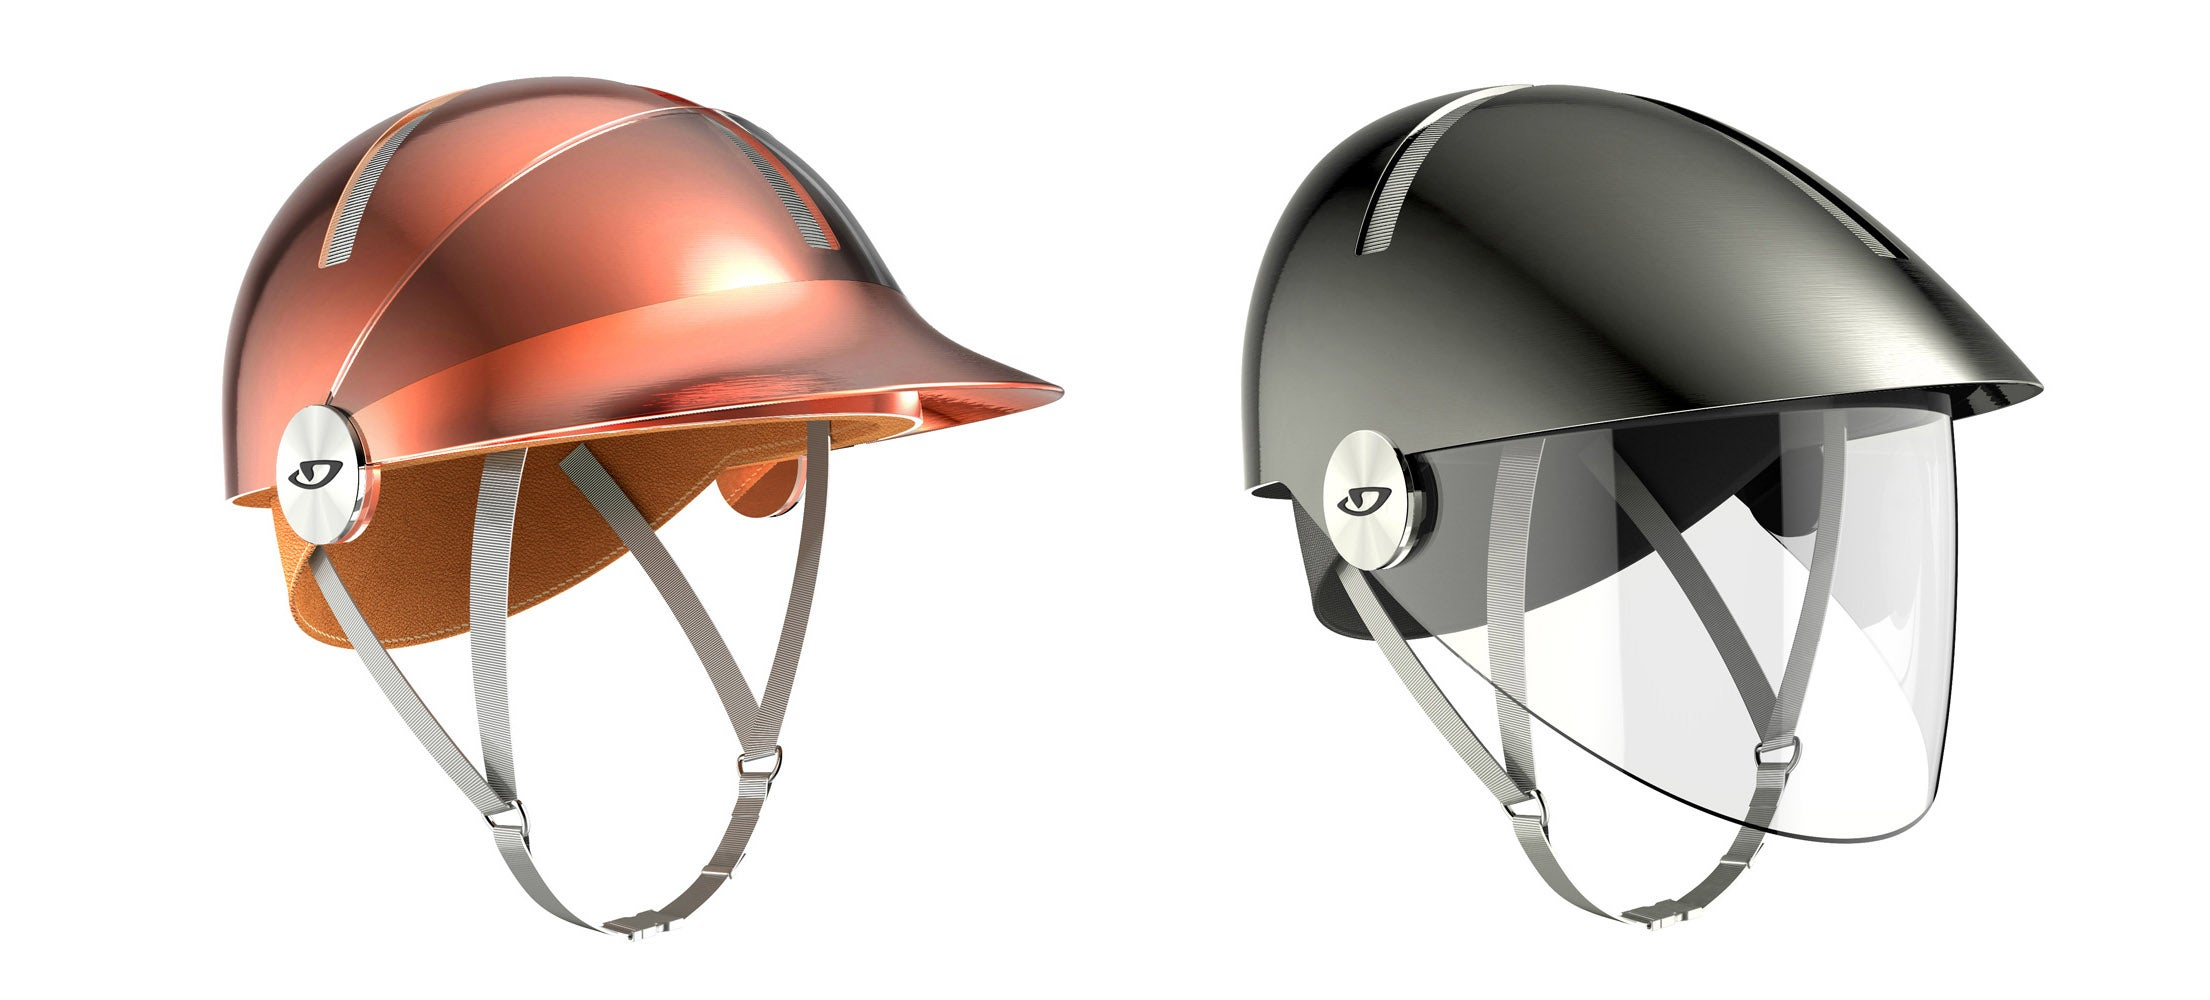 These Philippe Starck Bicycle Helmets Look Too Good to Wear